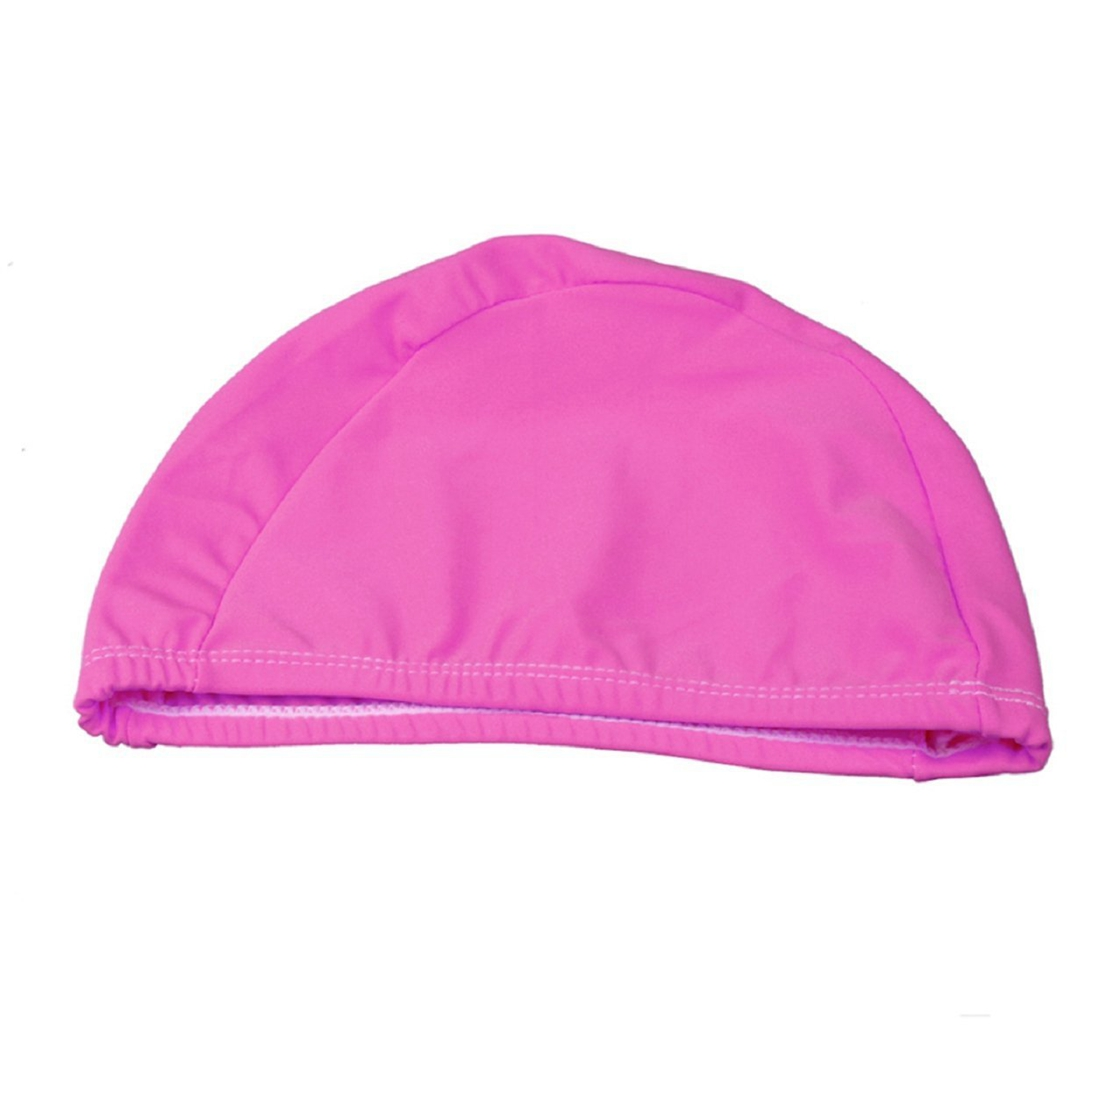 Adult Swimming Hats Unisex Outdoor Sports Stretch Cap Lahore